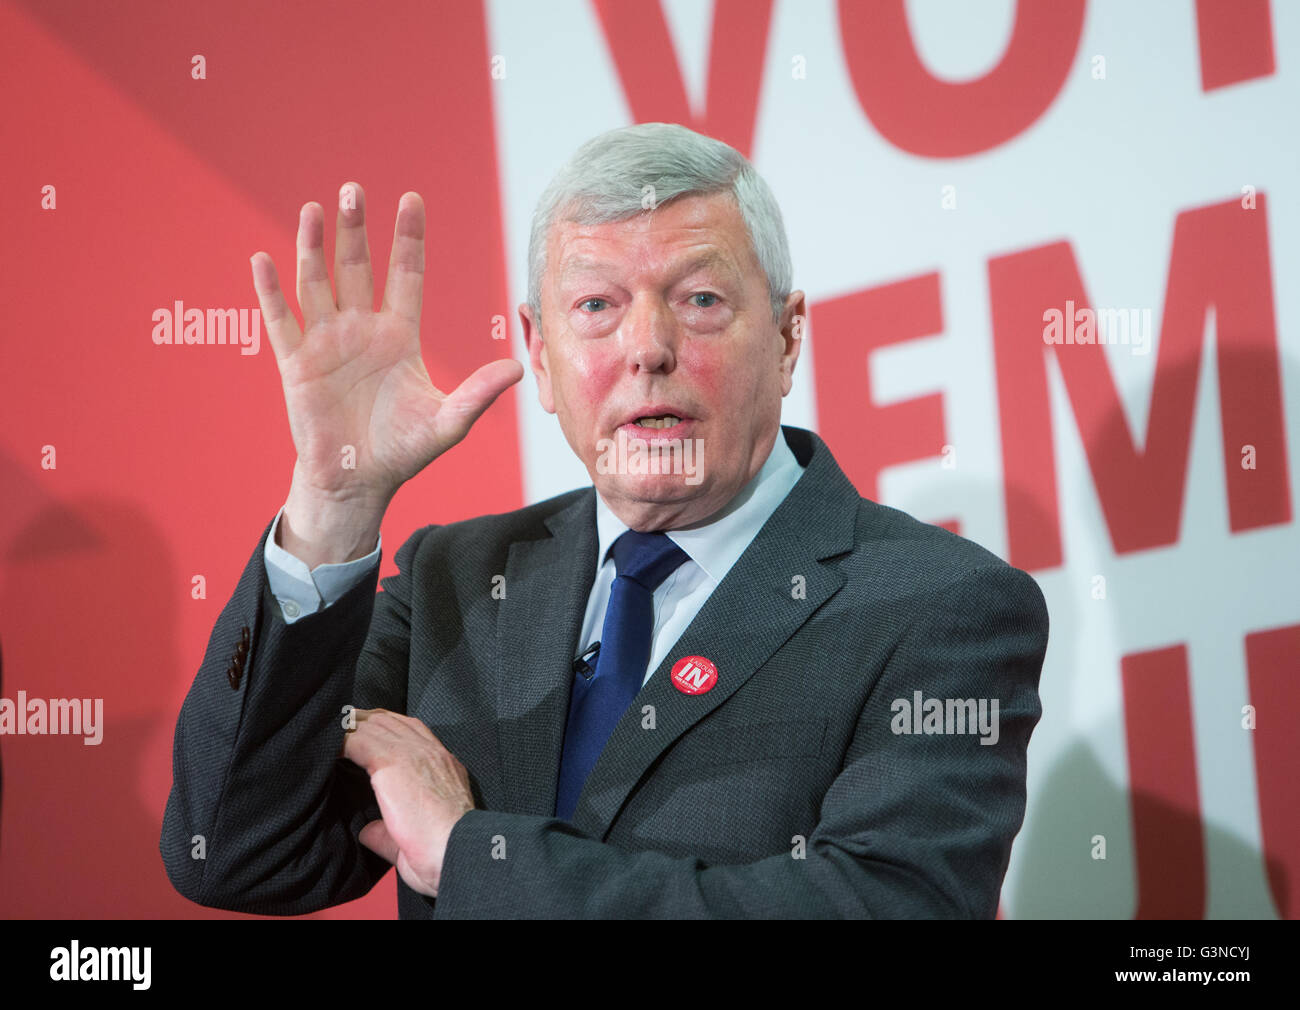 Alan Johnson MP speaks at a conference for the 'Vote In' campaign ahead of the June 23rd referendum vote - Stock Image